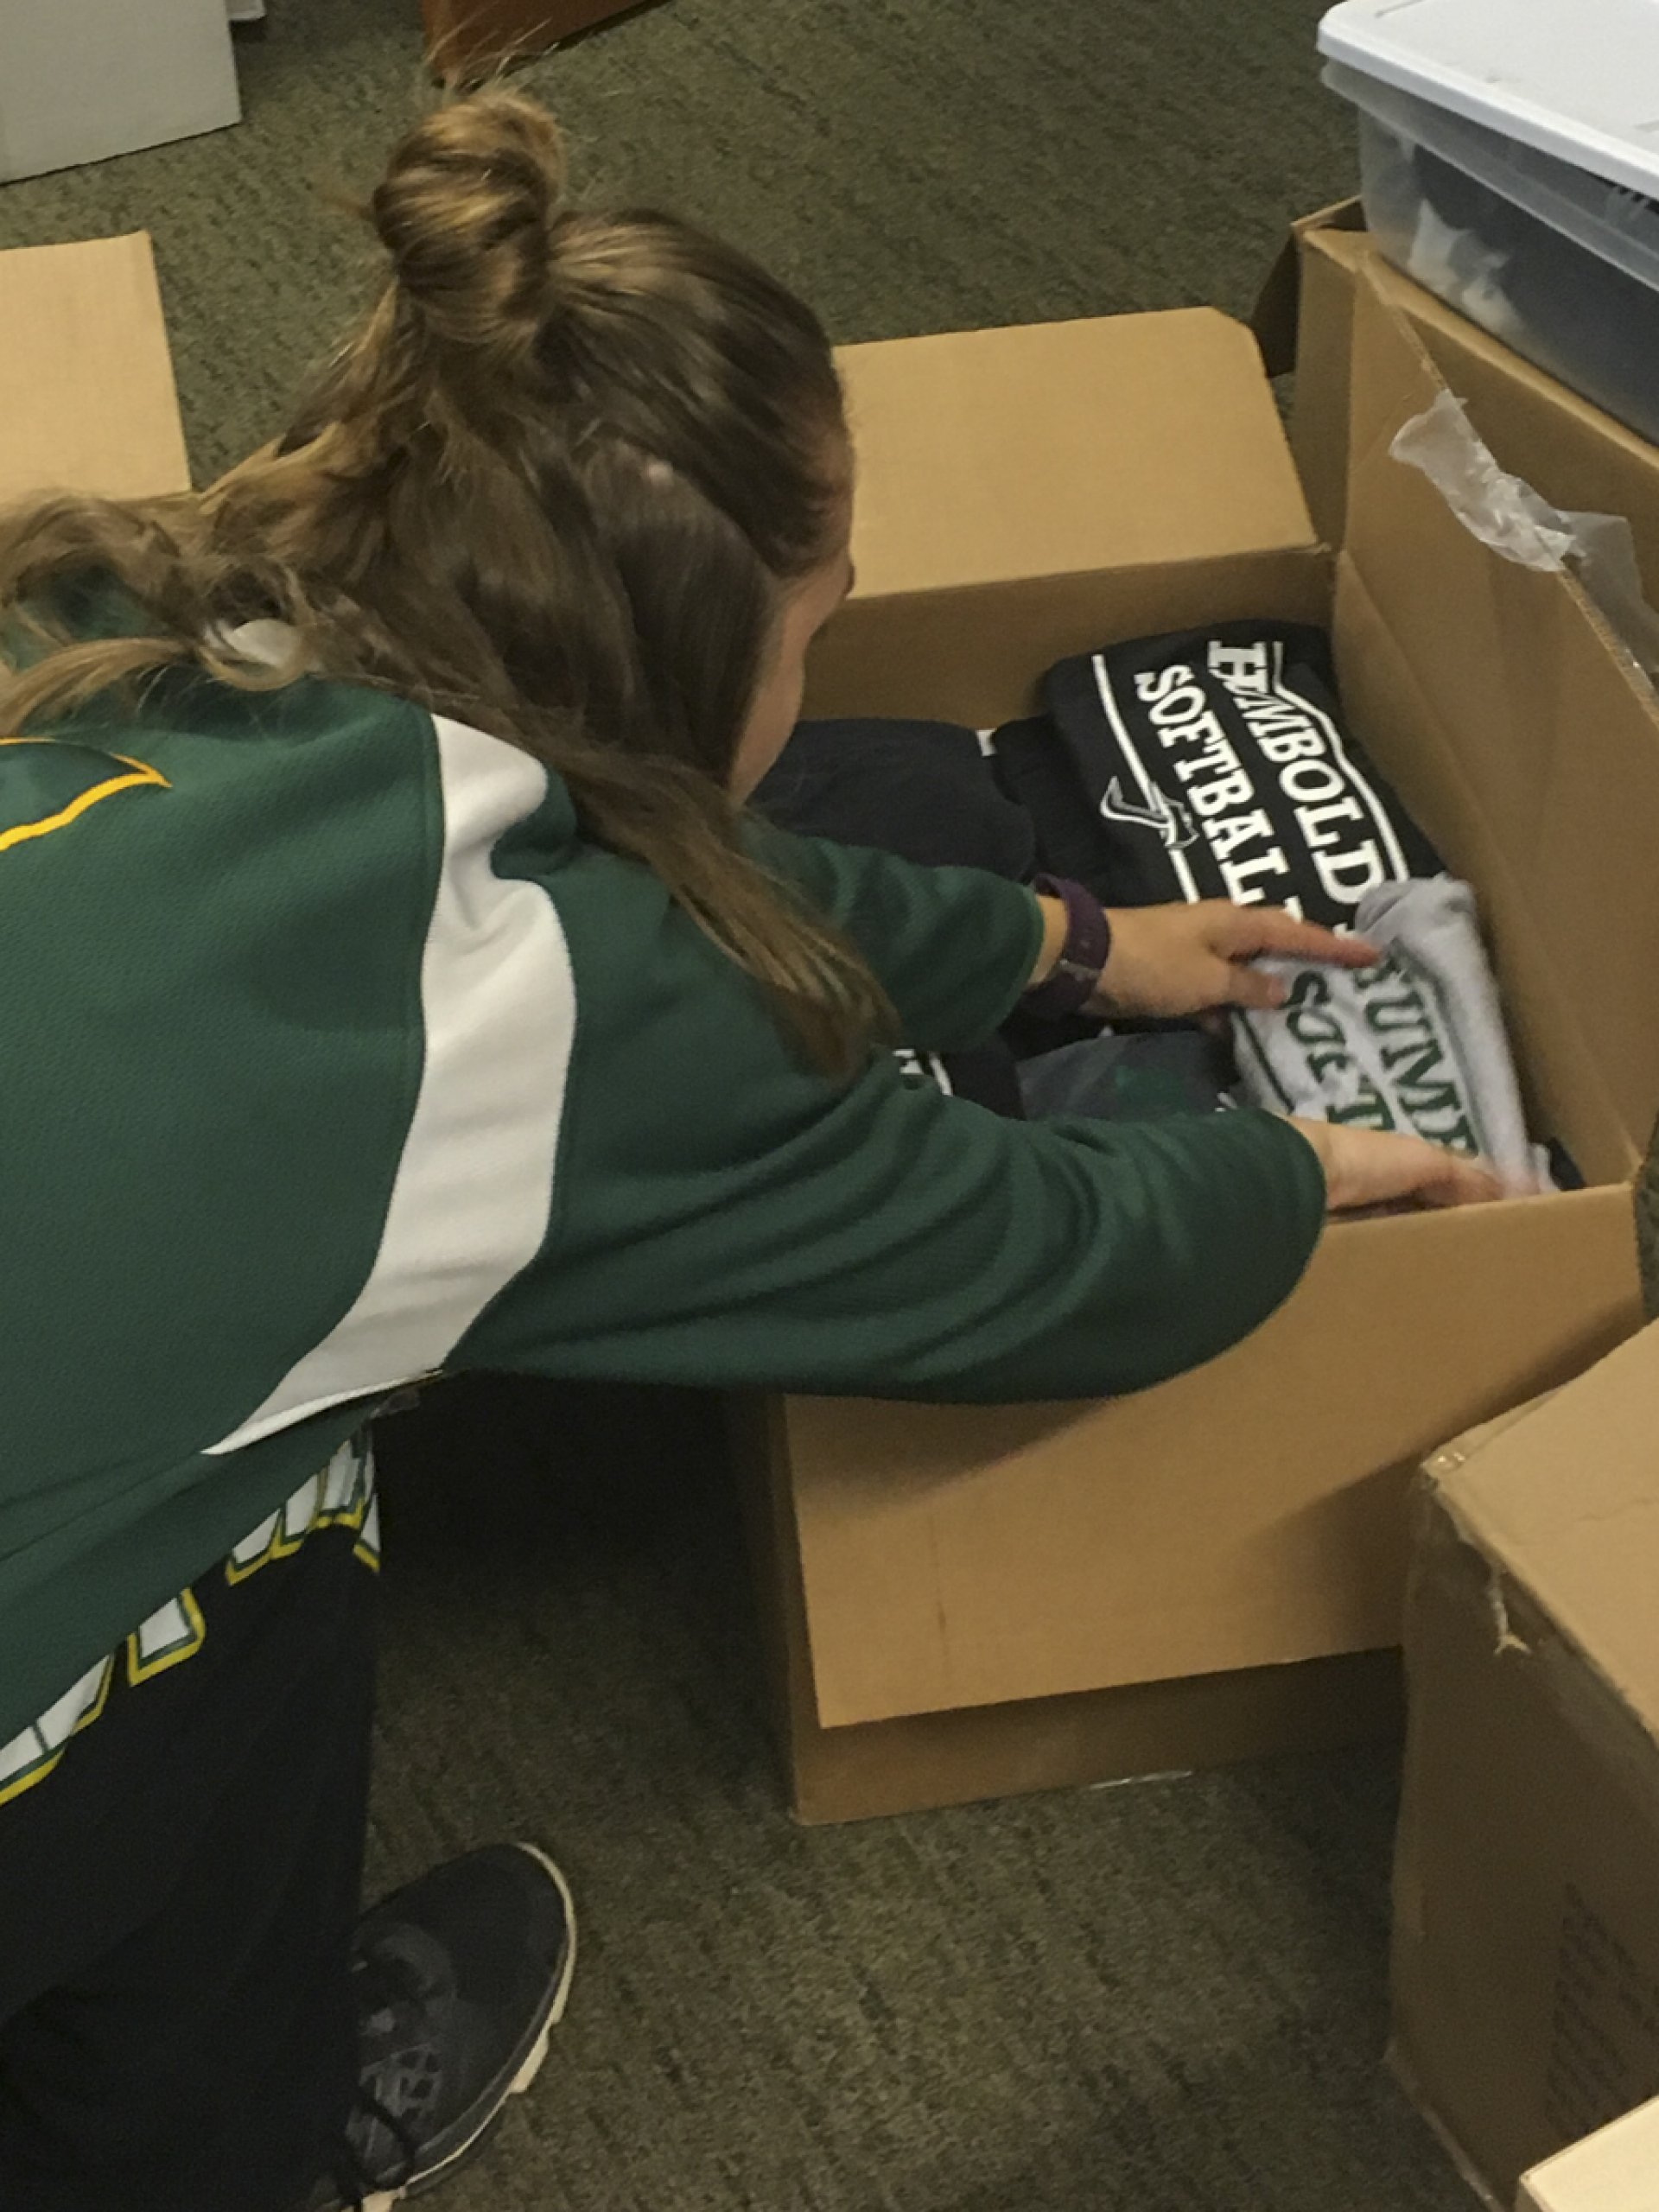 HSU Softball team sending donations to the University of Houston. | Photo by Shelli Sarchett